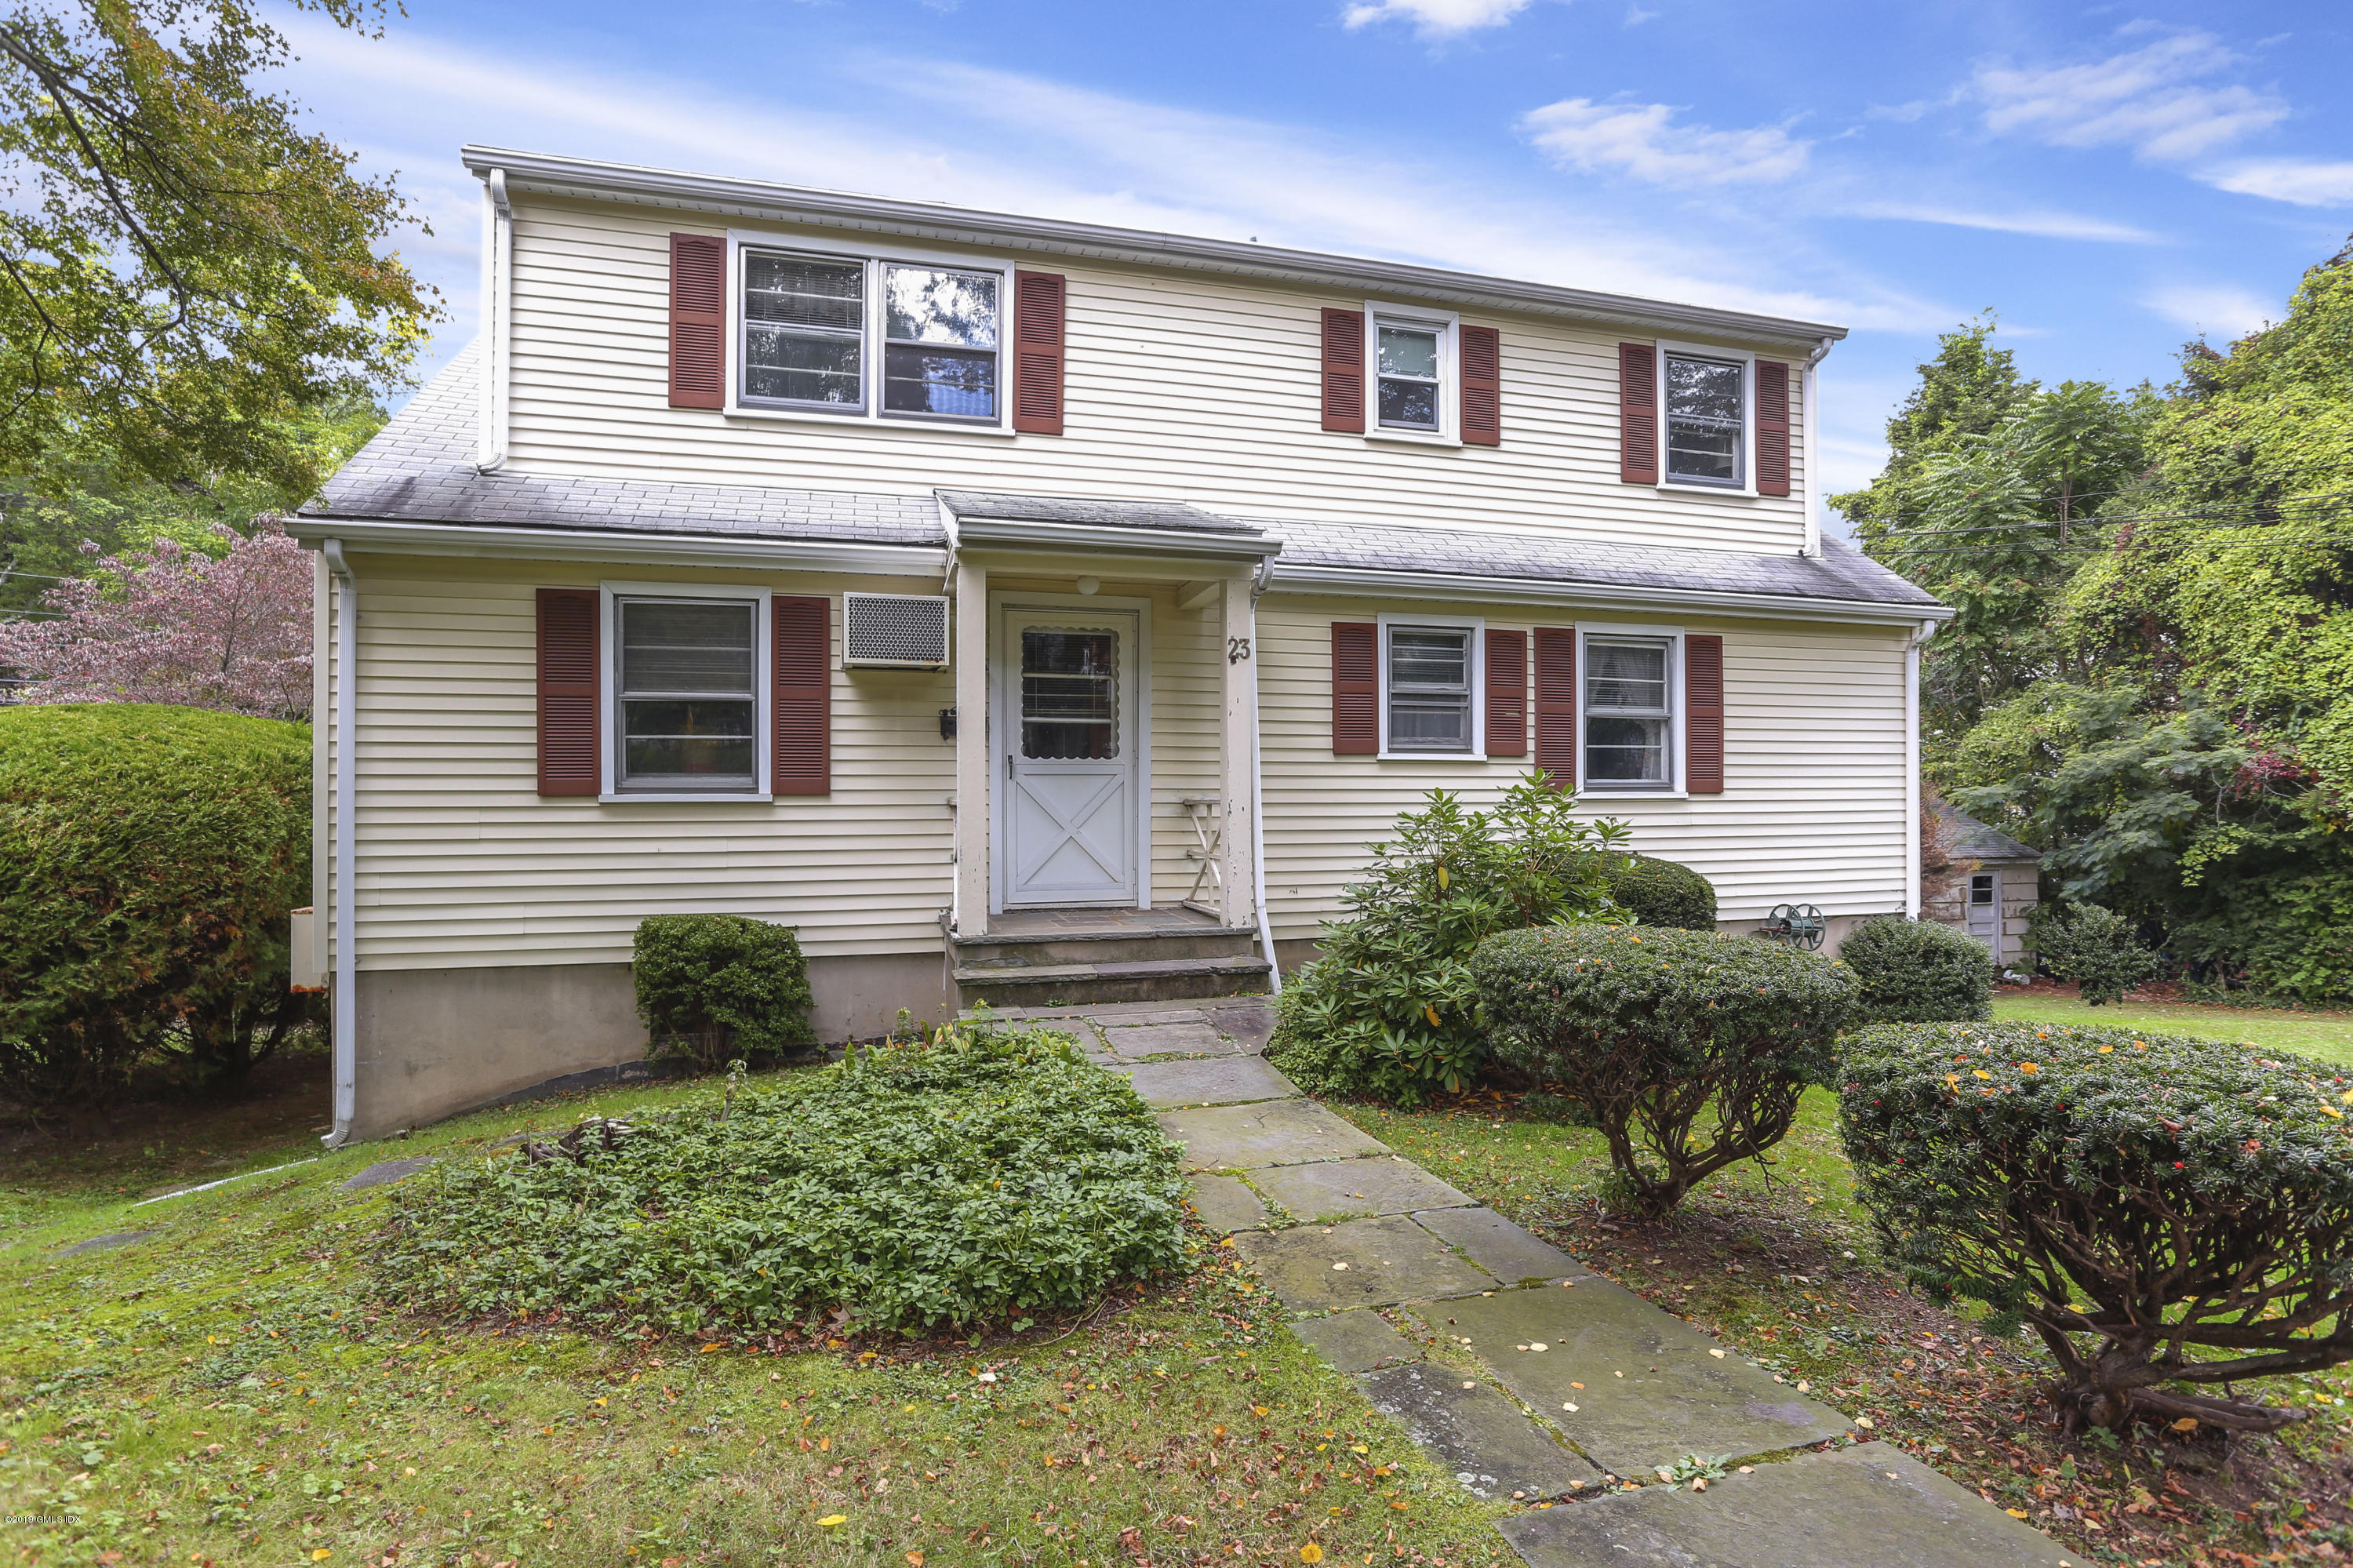 23 Ettl Lane,Greenwich,Connecticut 06831,5 Bedrooms Bedrooms,3 BathroomsBathrooms,Single family,Ettl,108072